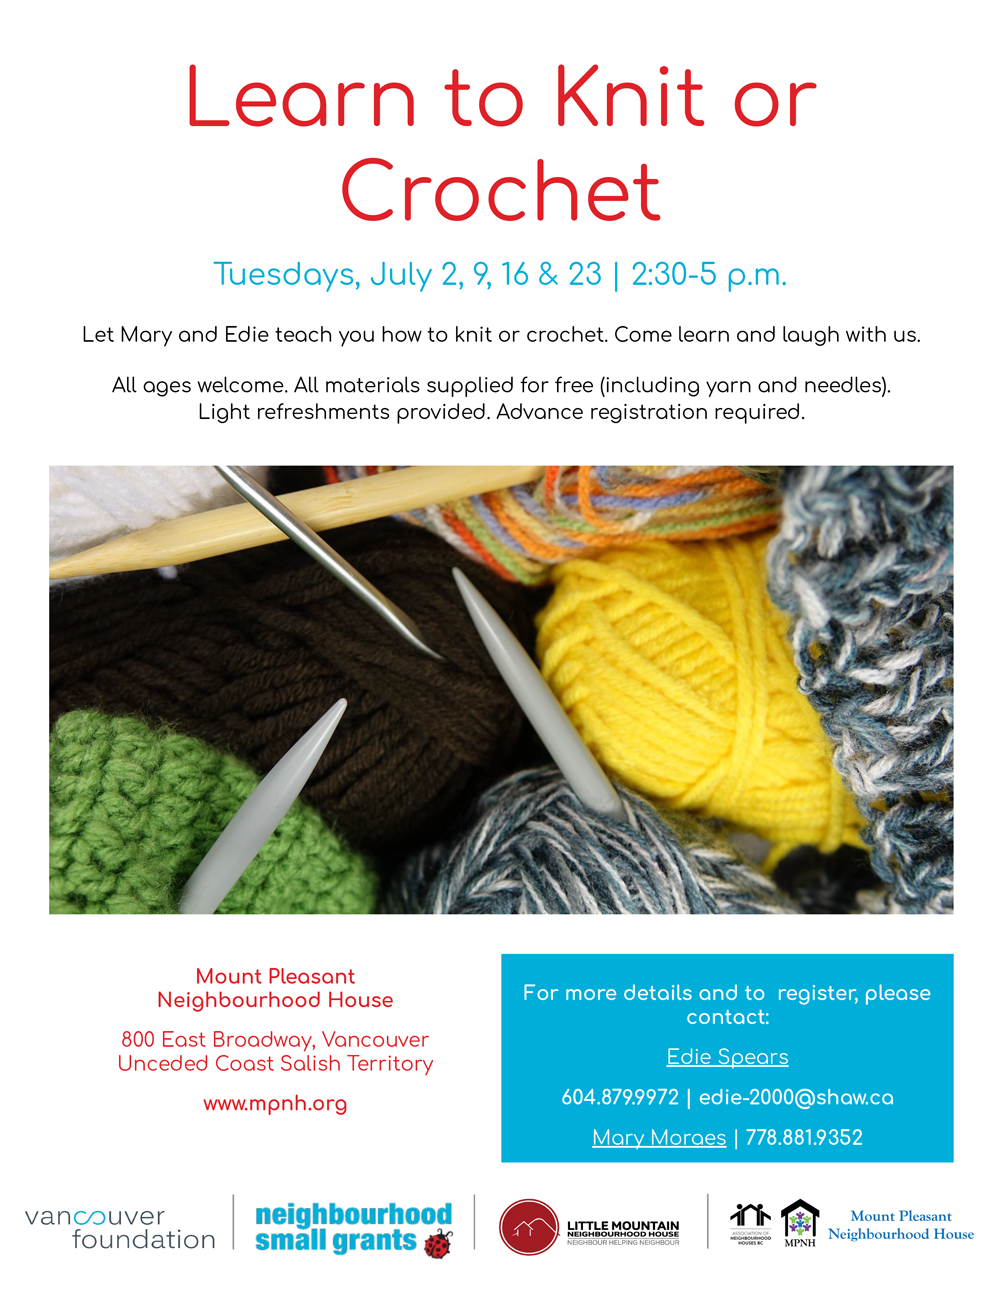 An image of the poster with project details, featuring colourful balls of yarn and knitting and crochet needles.